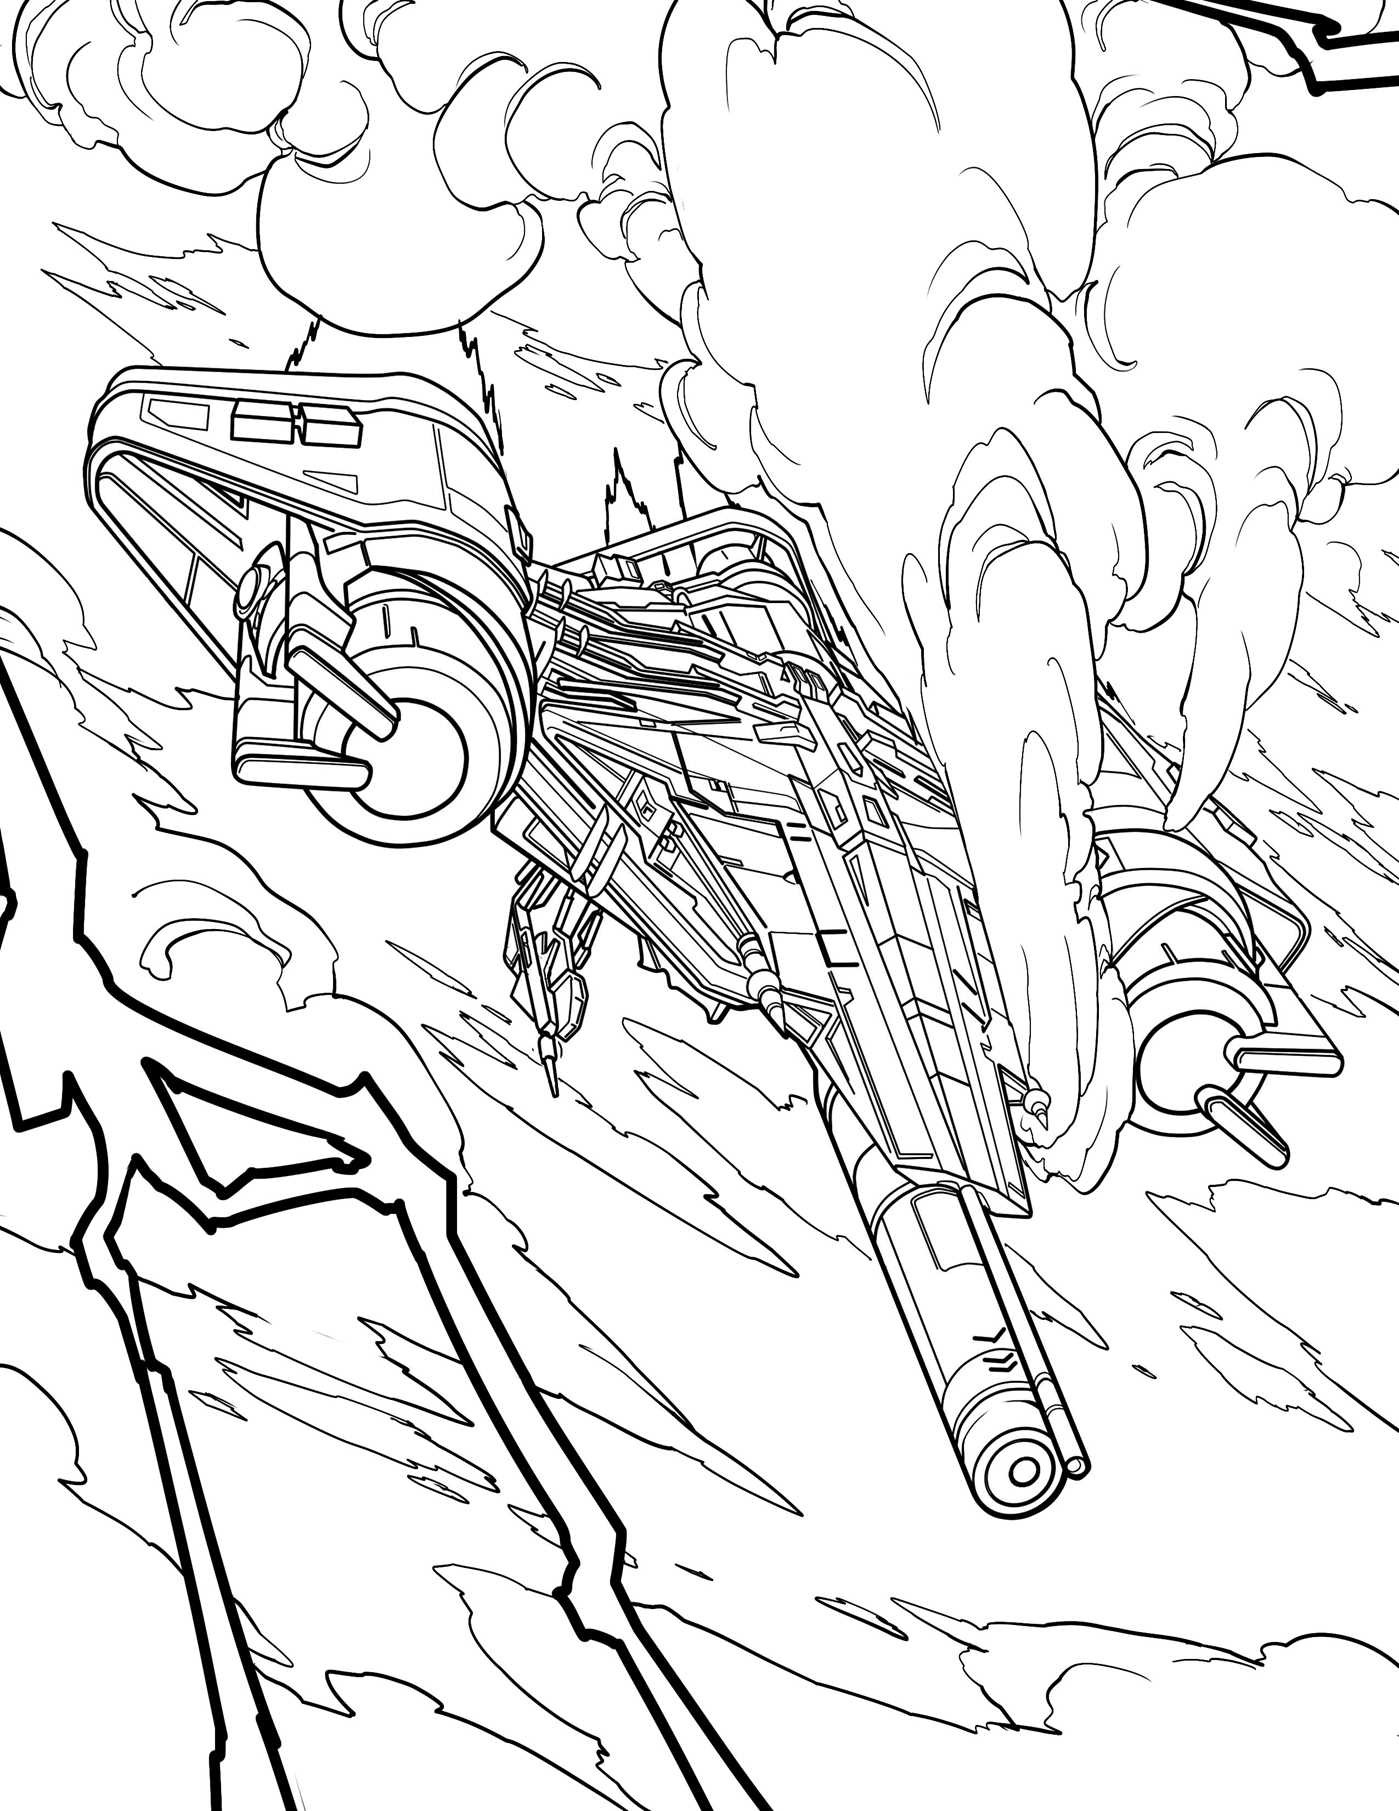 destiny 2 coloring pages | Destiny: The Official Coloring Book | Book by Bungie, Ze ...